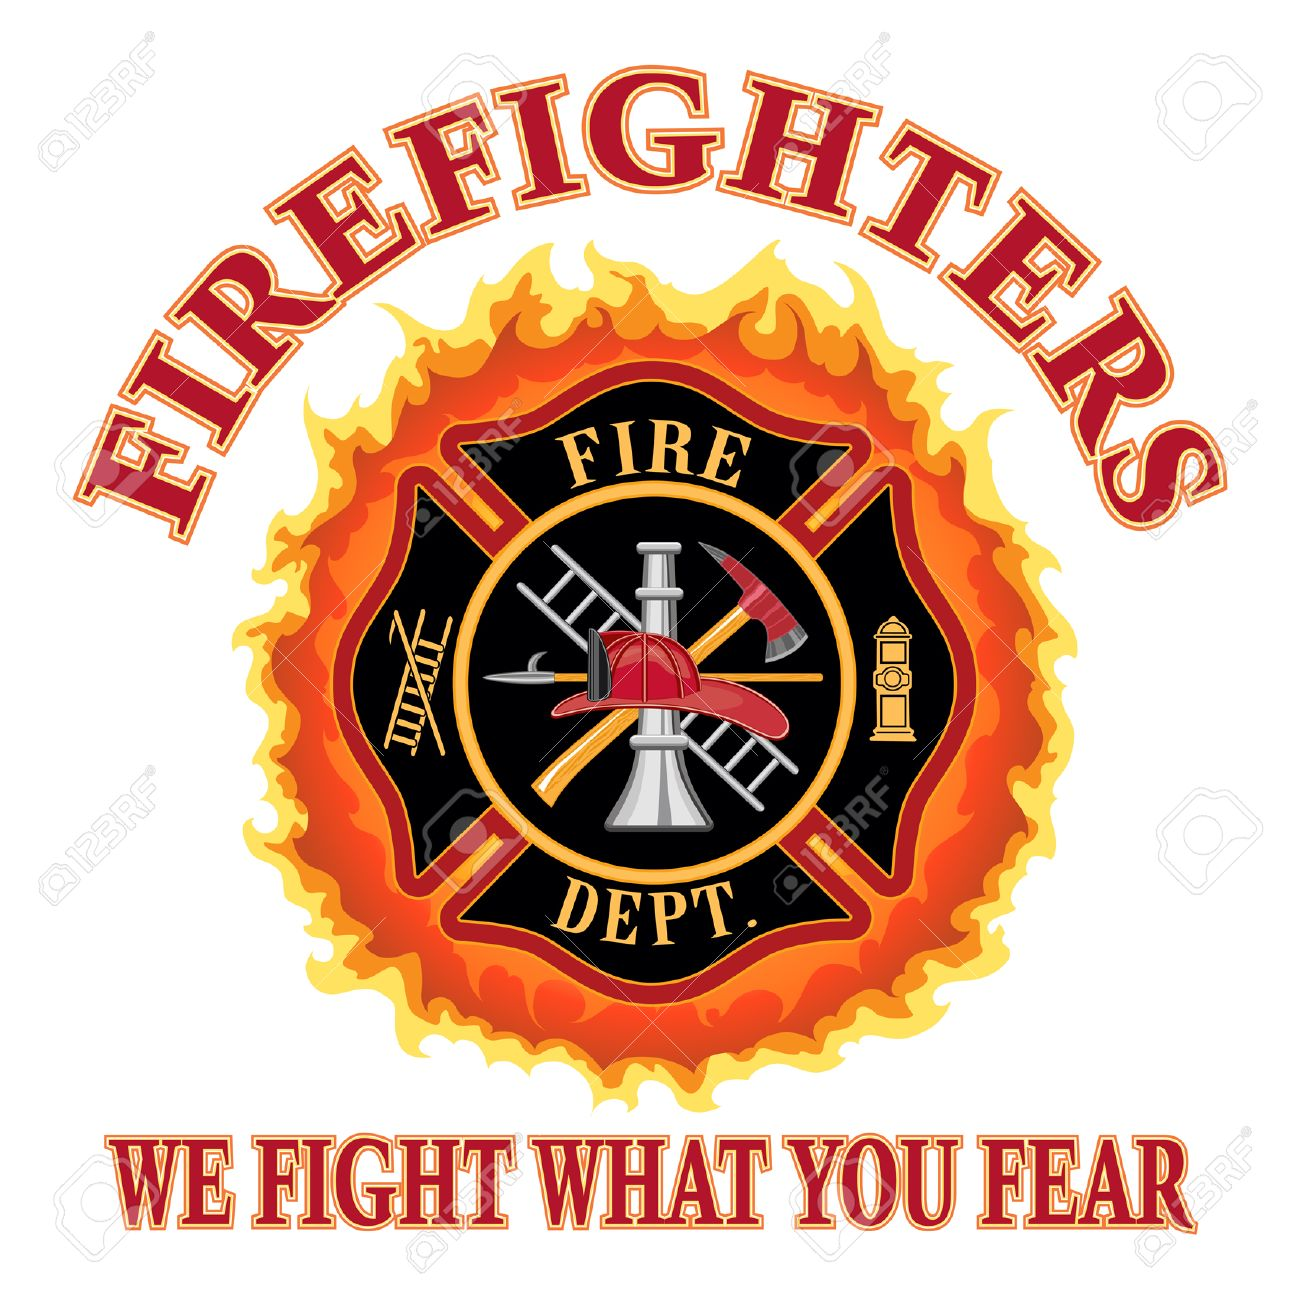 Firefighters We Fight What You Fear Is An Illustration Of A Fire